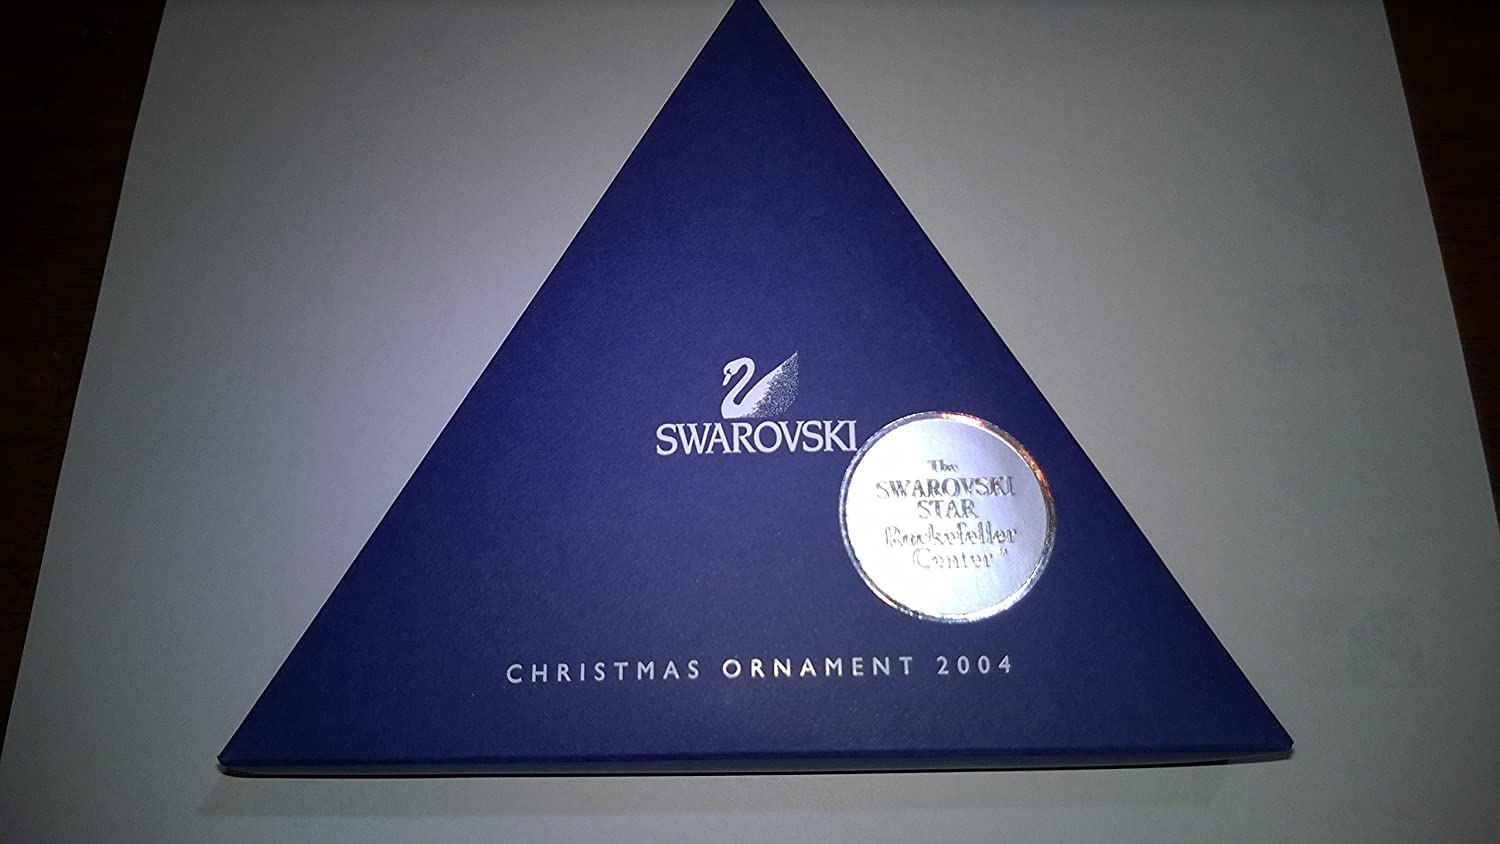 Swarovski christmas ornament 2004 - Amazon Com Swarovski 2004 Annual Christmas Snowflake Star Ornament Home Kitchen